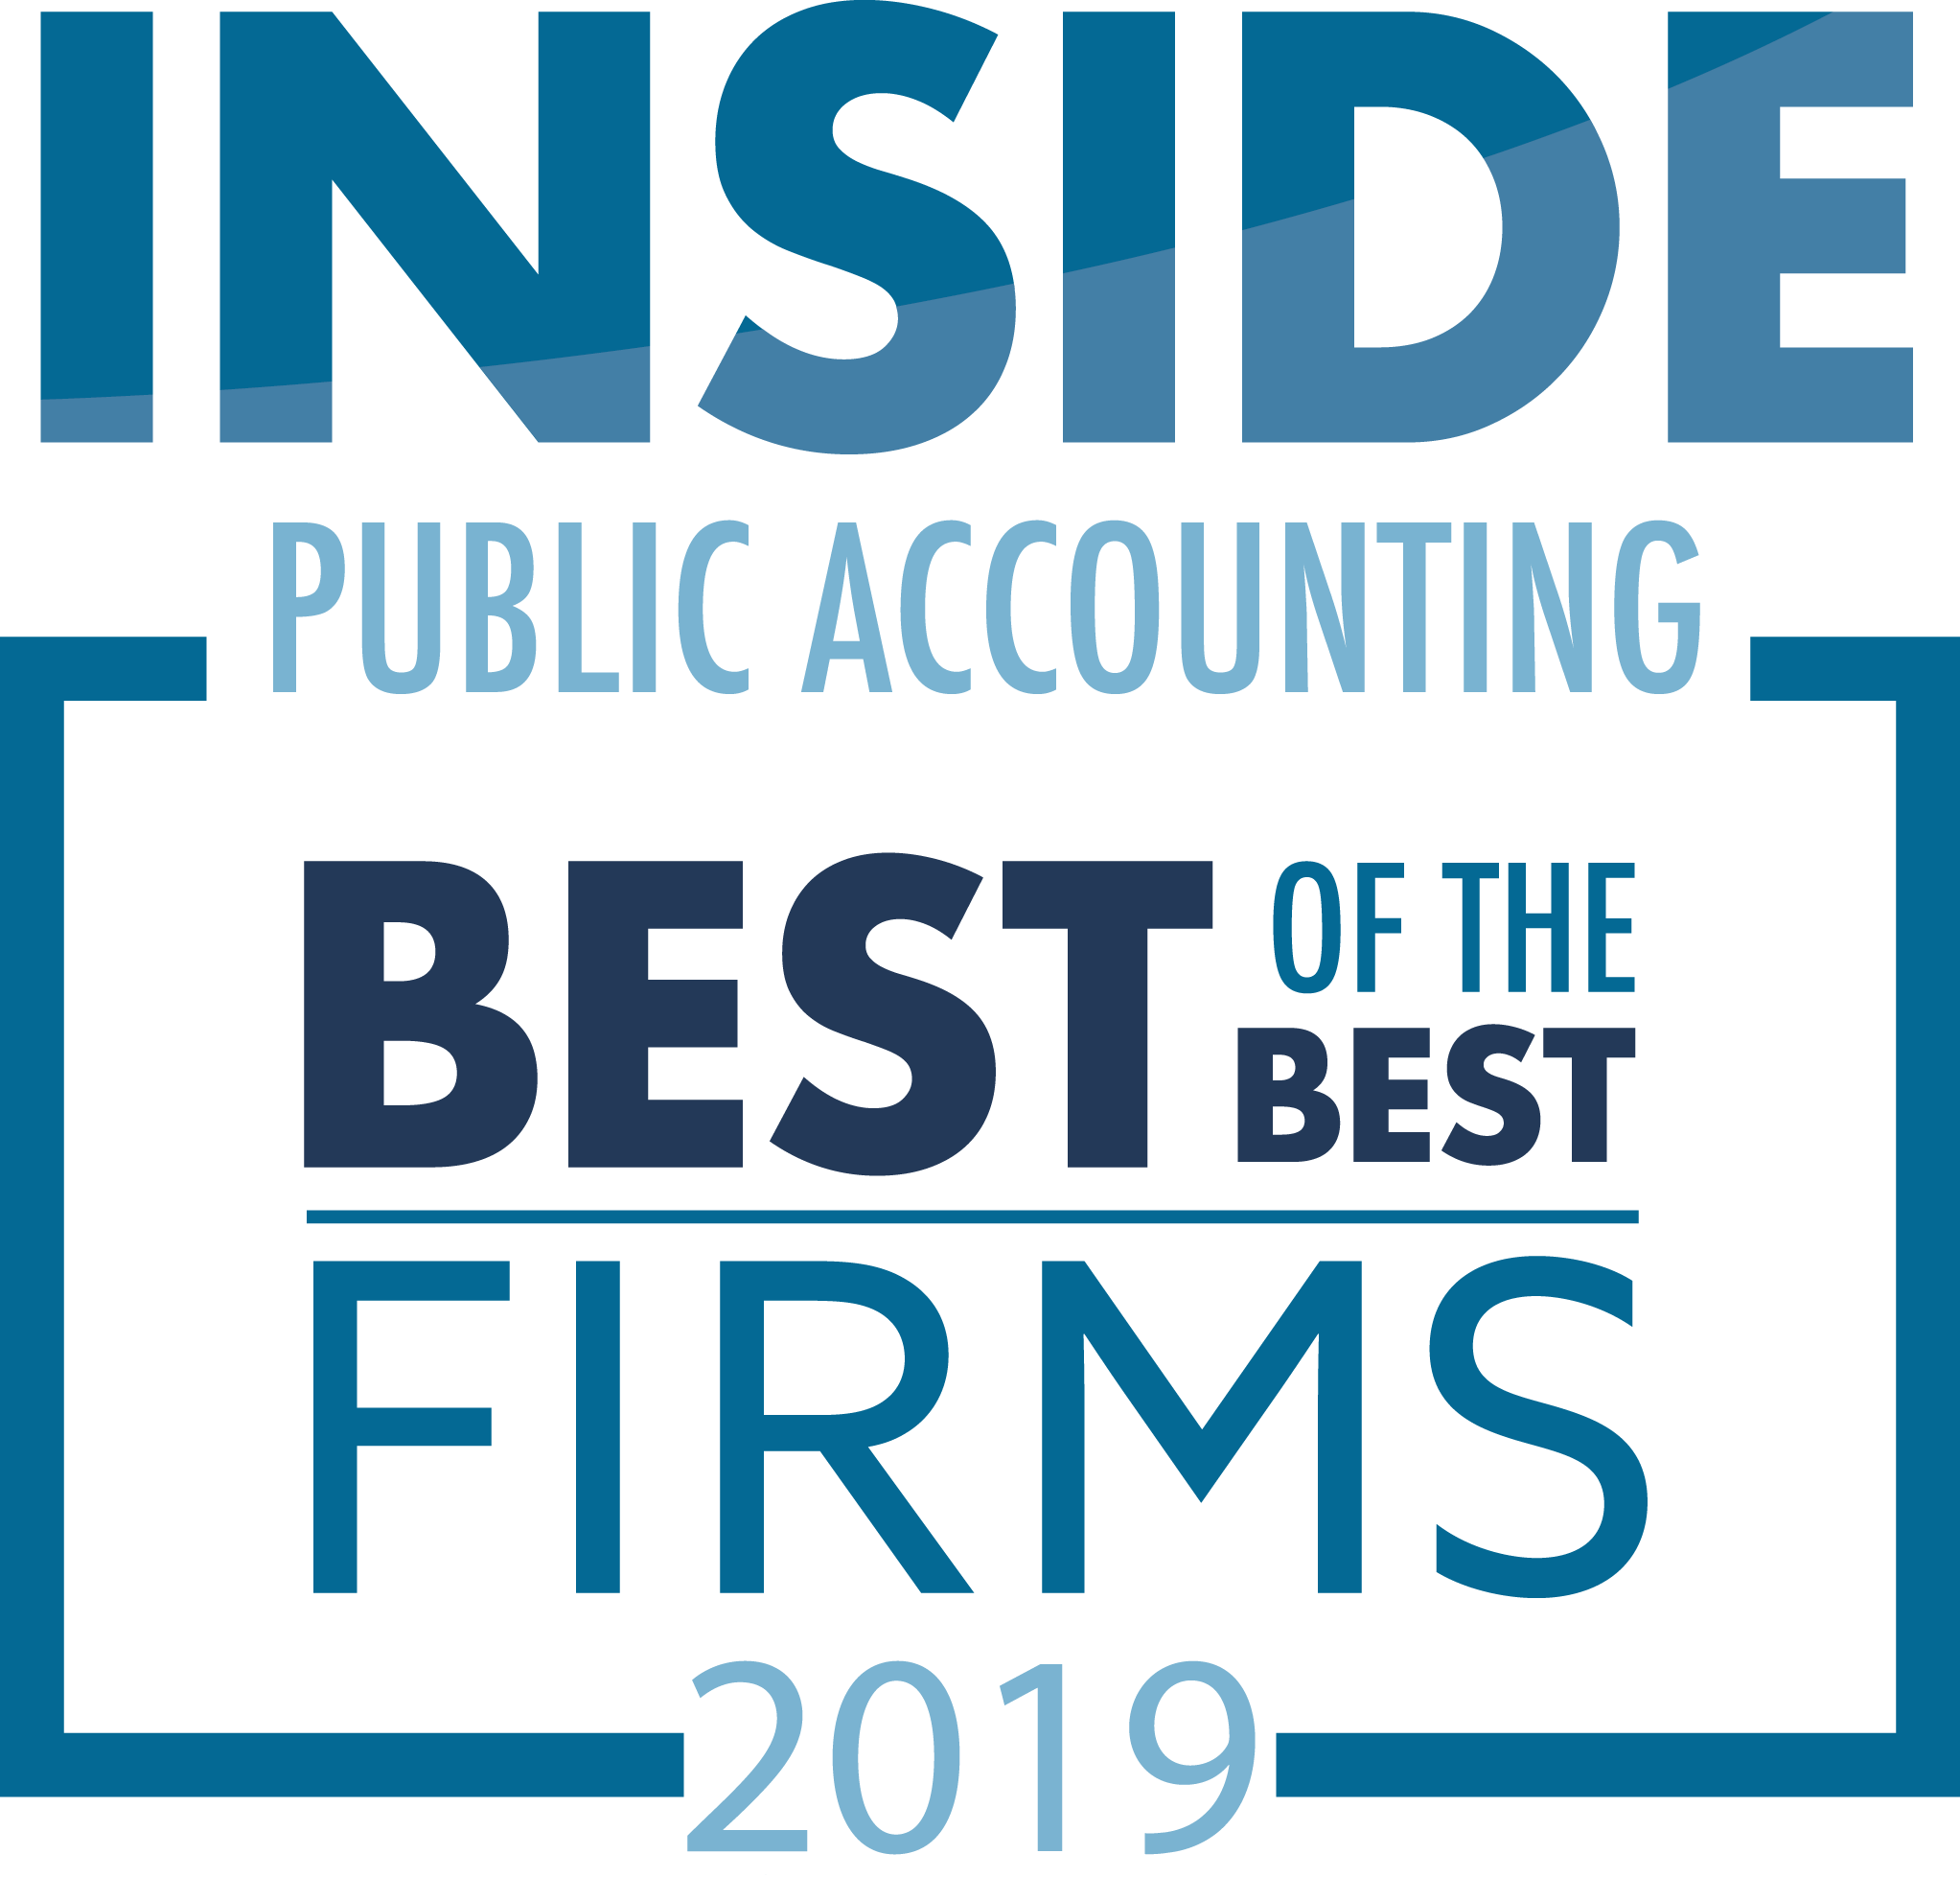 Goff Backa Alfera & Company, LLC Receives Accolades from Inside Public Accounting. Firm named Best of the Best Accounting Firms.